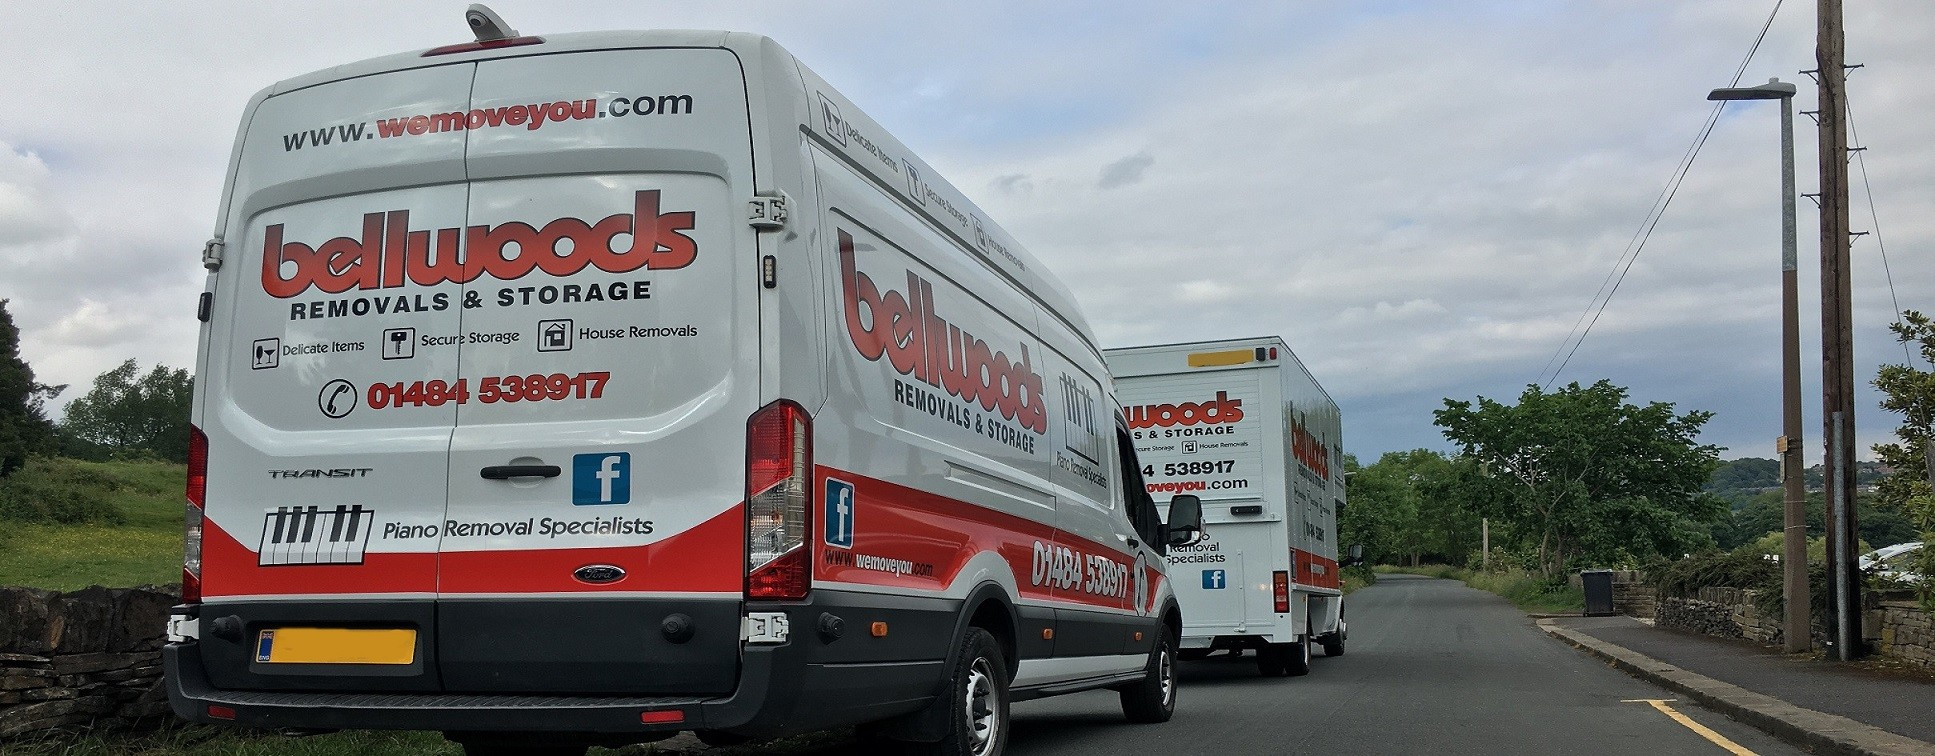 Bellwoods Removals Latest Vans